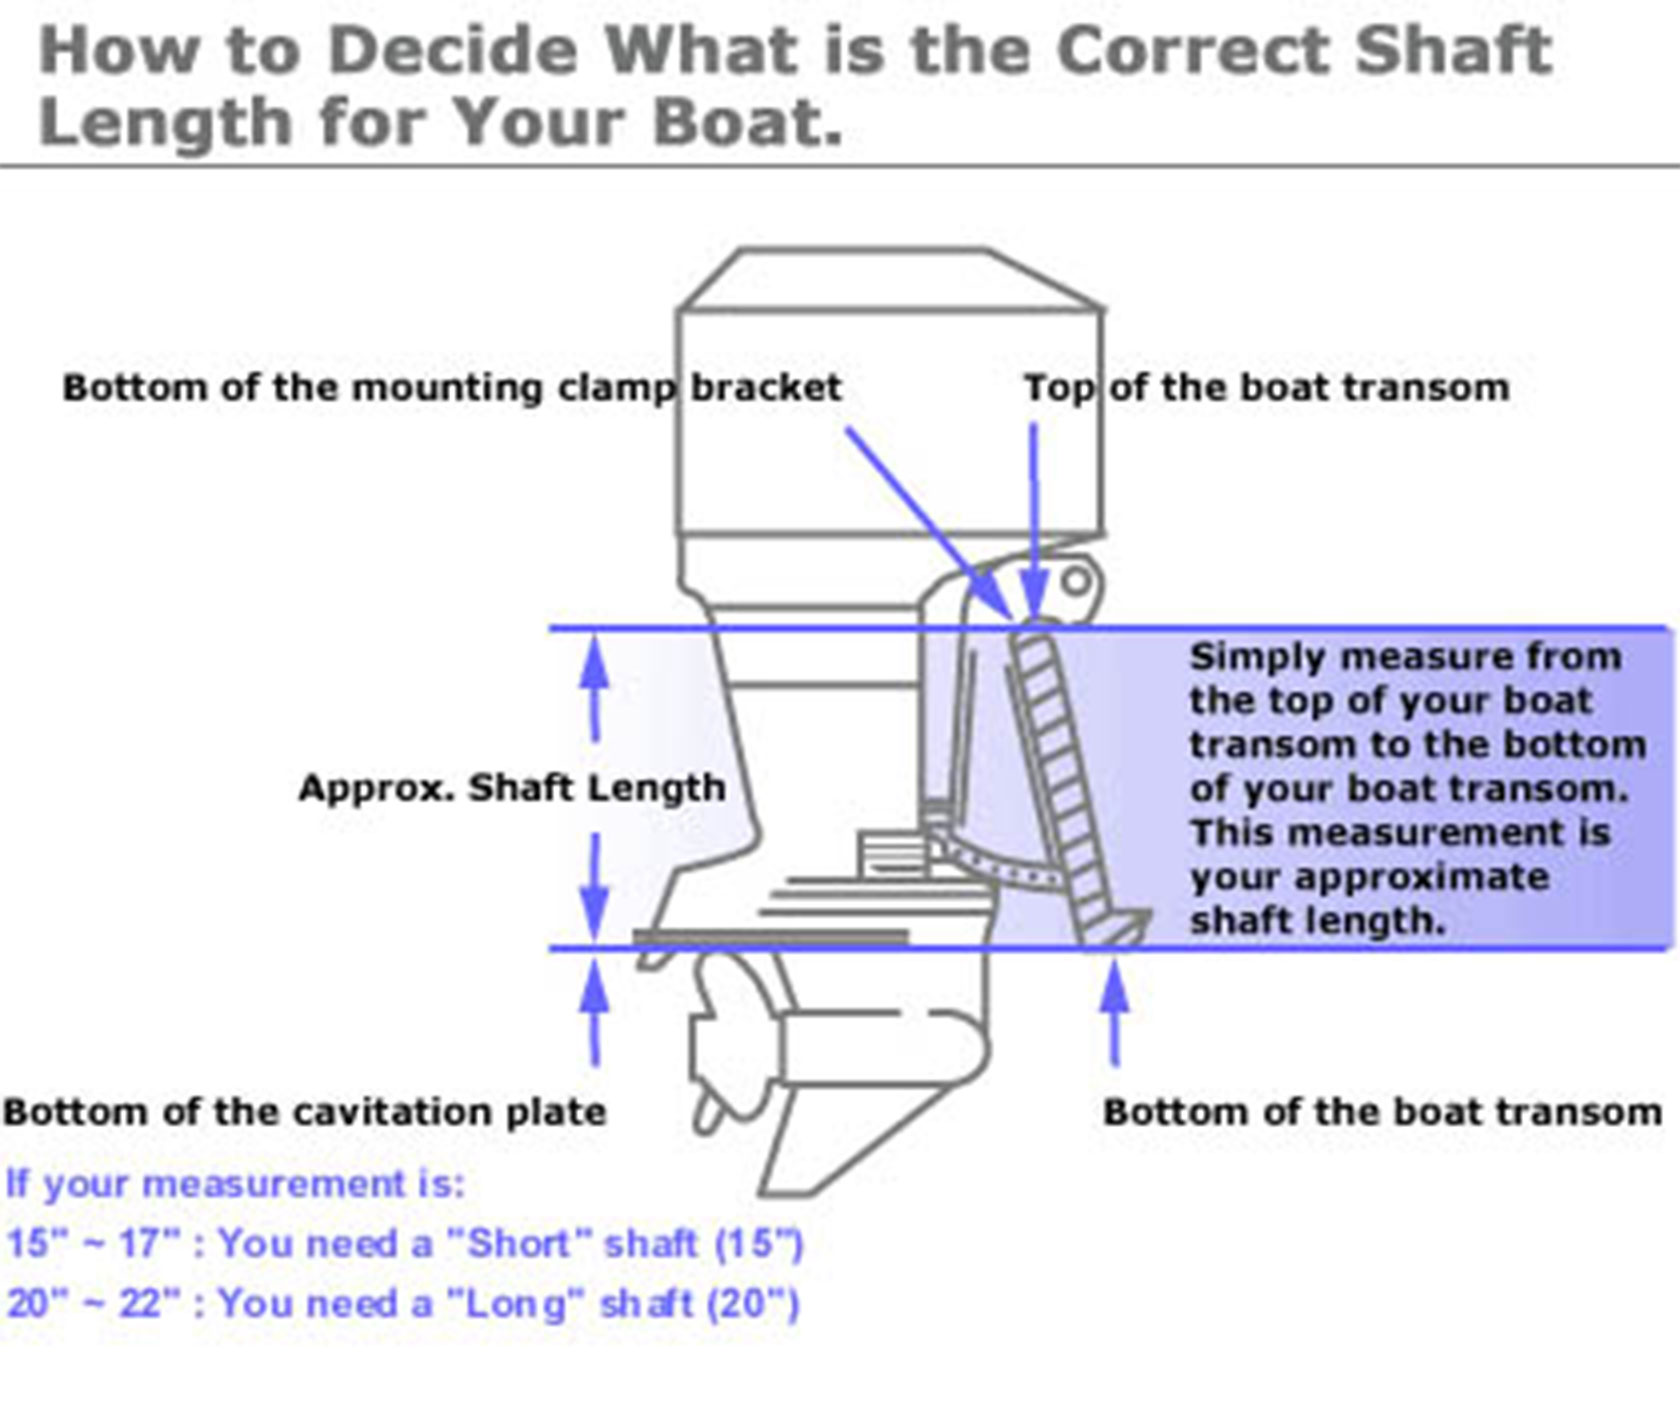 hight resolution of we recommend that you consult with your local distributor to determine which is the correct shaft length for your particular boat